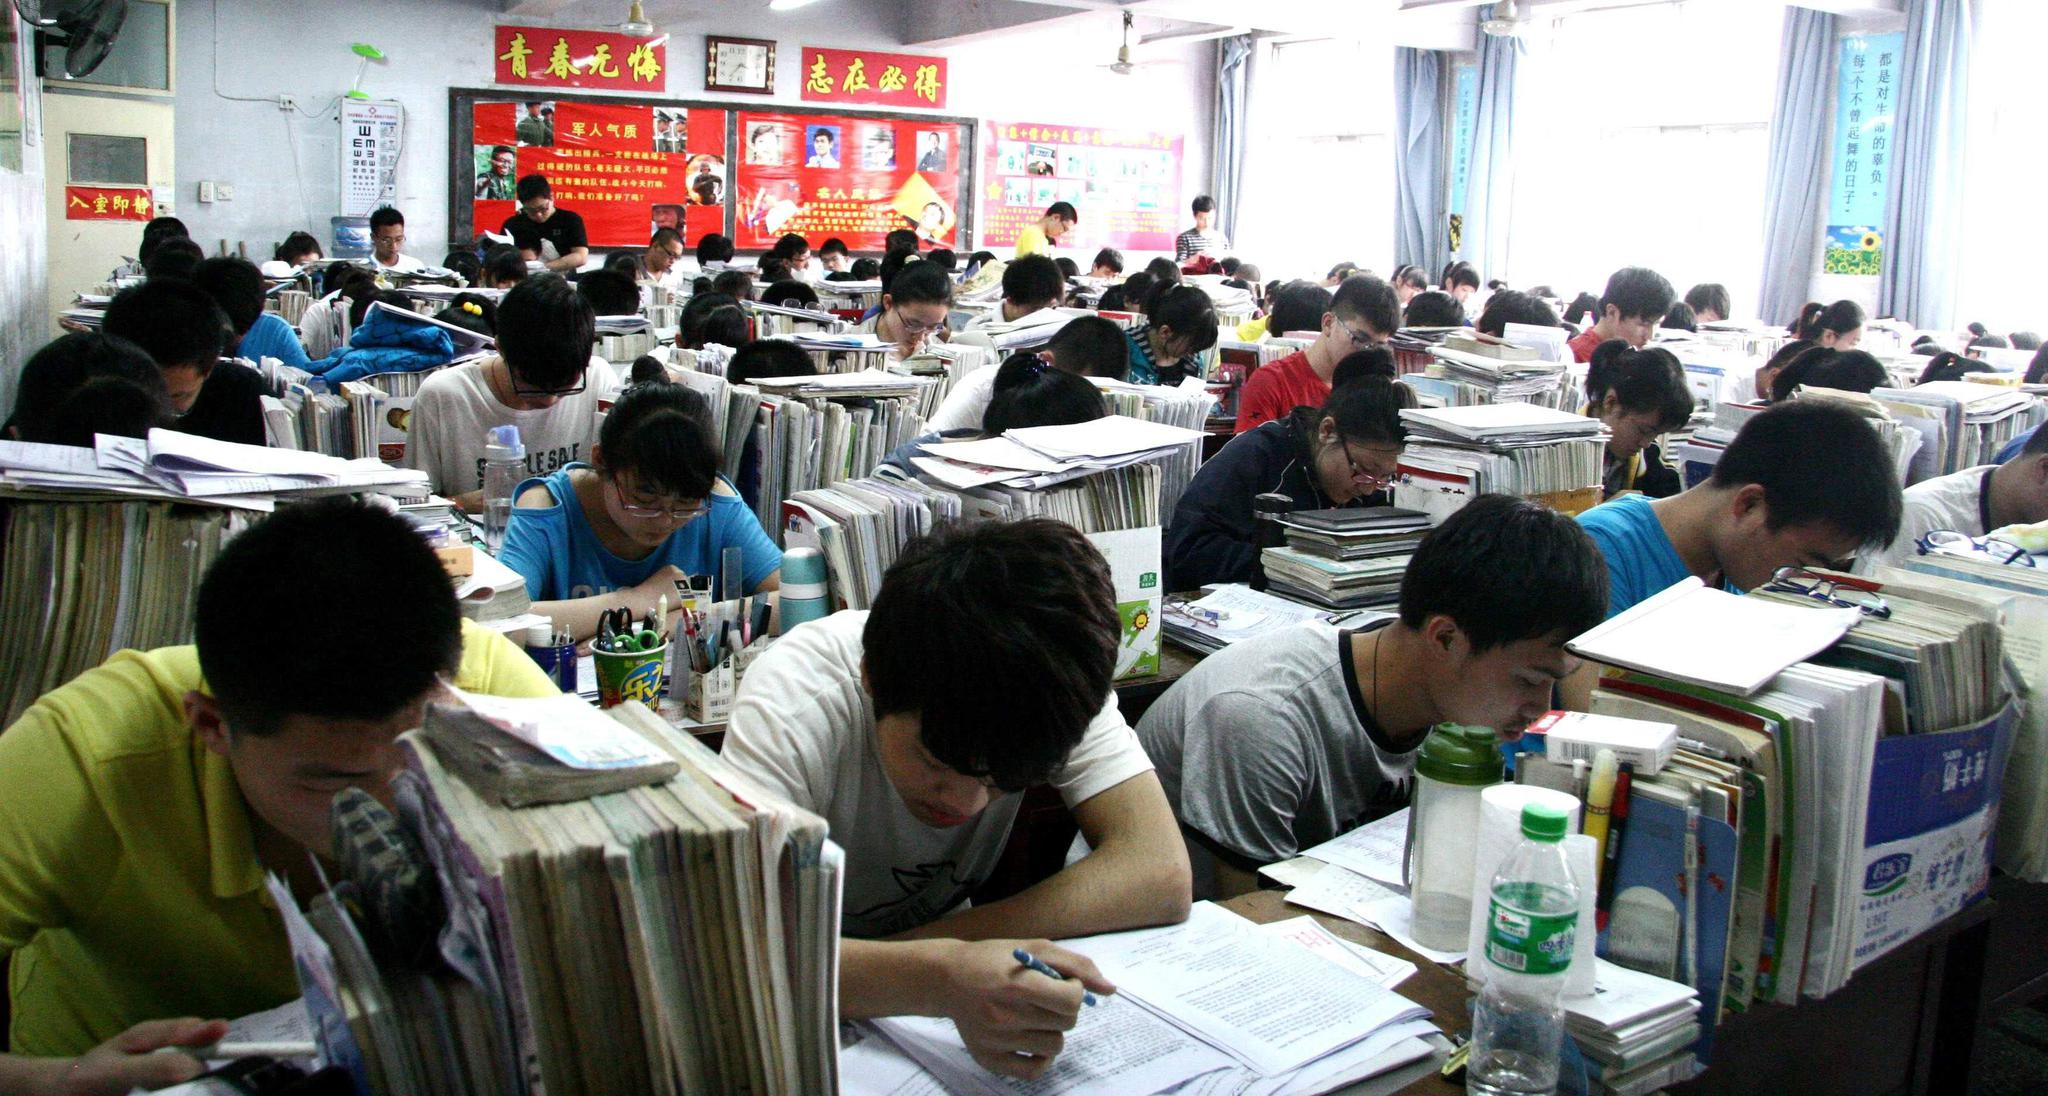 Several regions to eliminate gaokao points for minorities